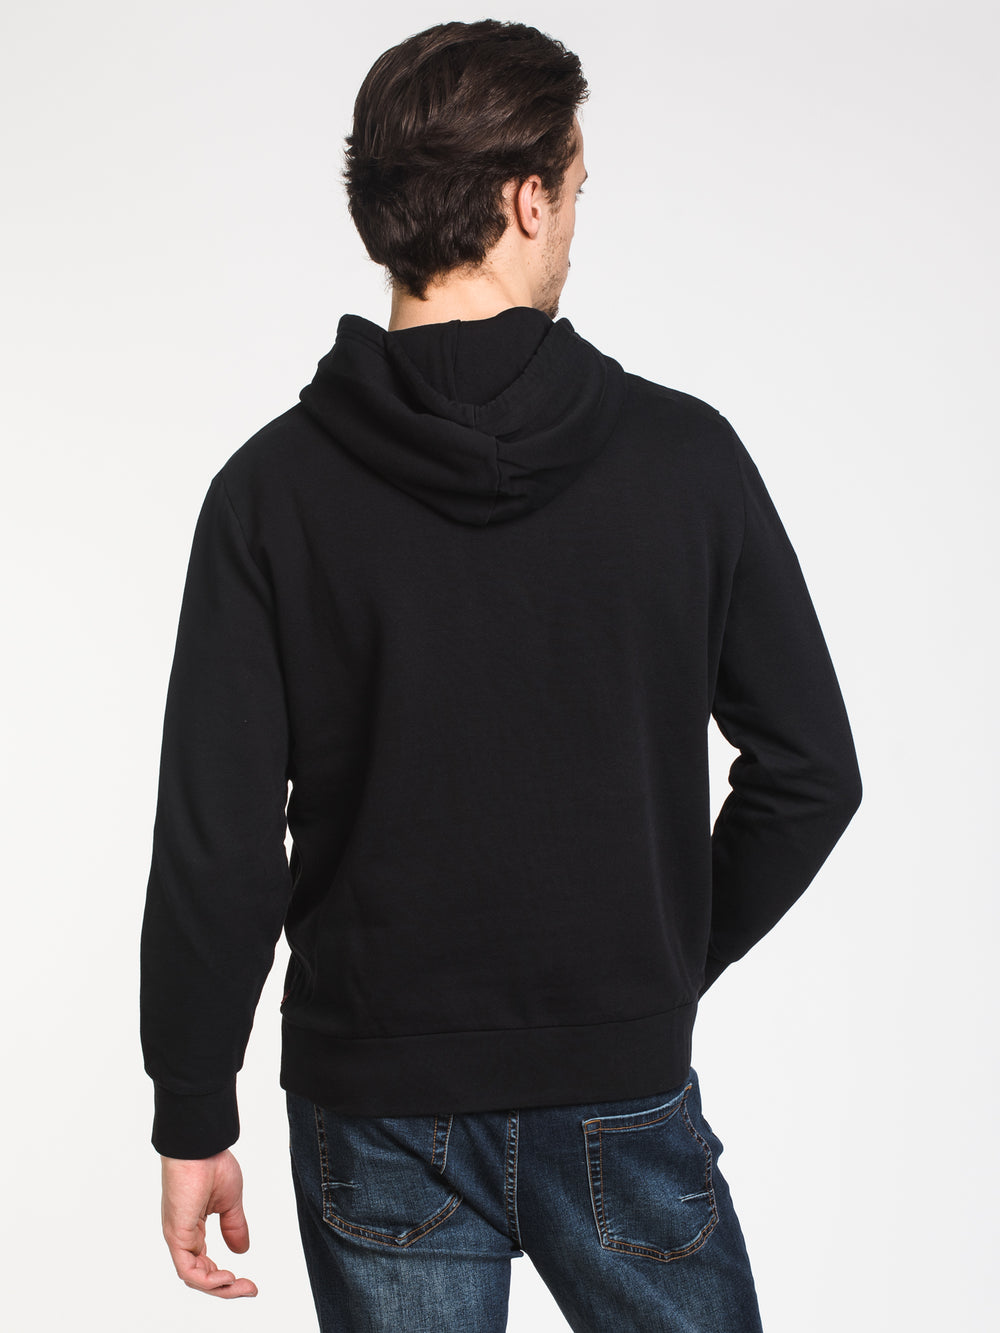 MENS GRAPHIC PULLOVER HOODIE - BLACK